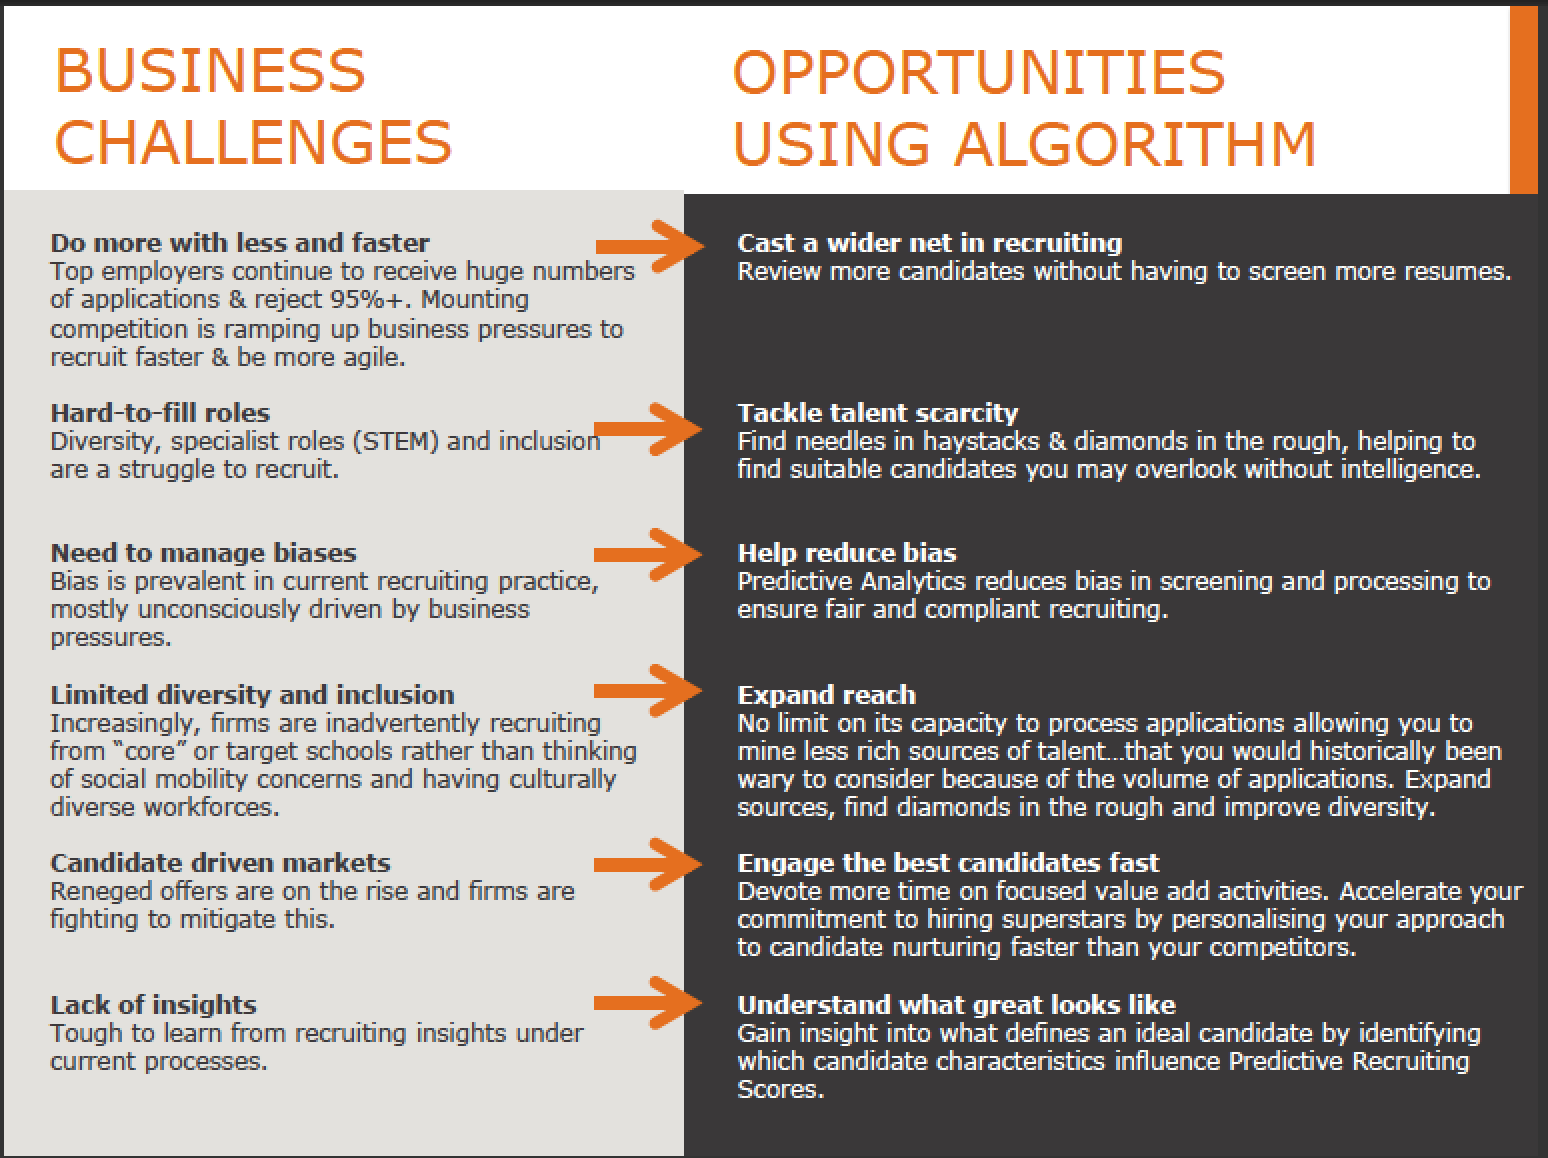 Business Challenges and Opportunities Chart